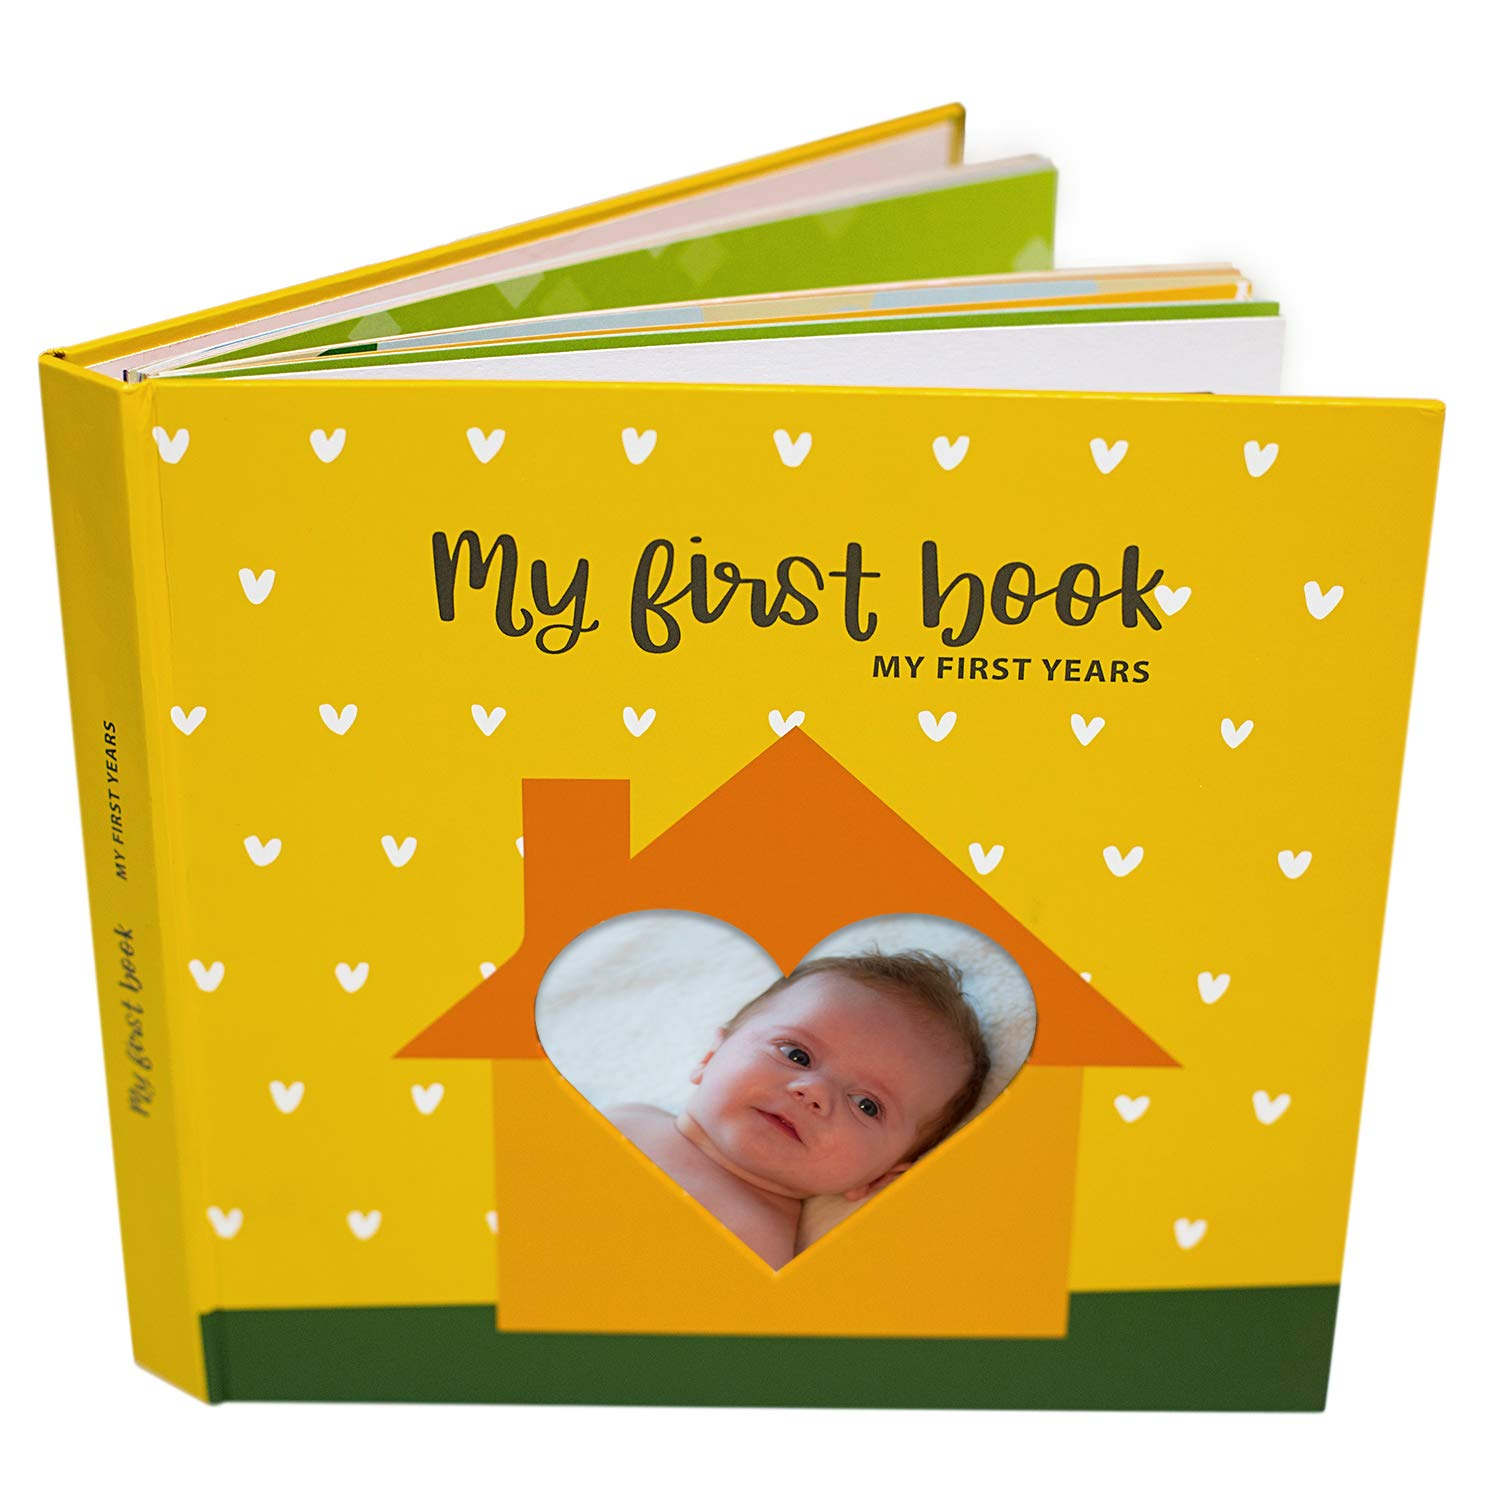 First 5 Years Baby Memory Book - Unisex Baby Journal with Clean Touch Ink Pad for Baby Footprint and Handprint Set - Baby Scrap Book - Baby Memory Books by BabelJoy